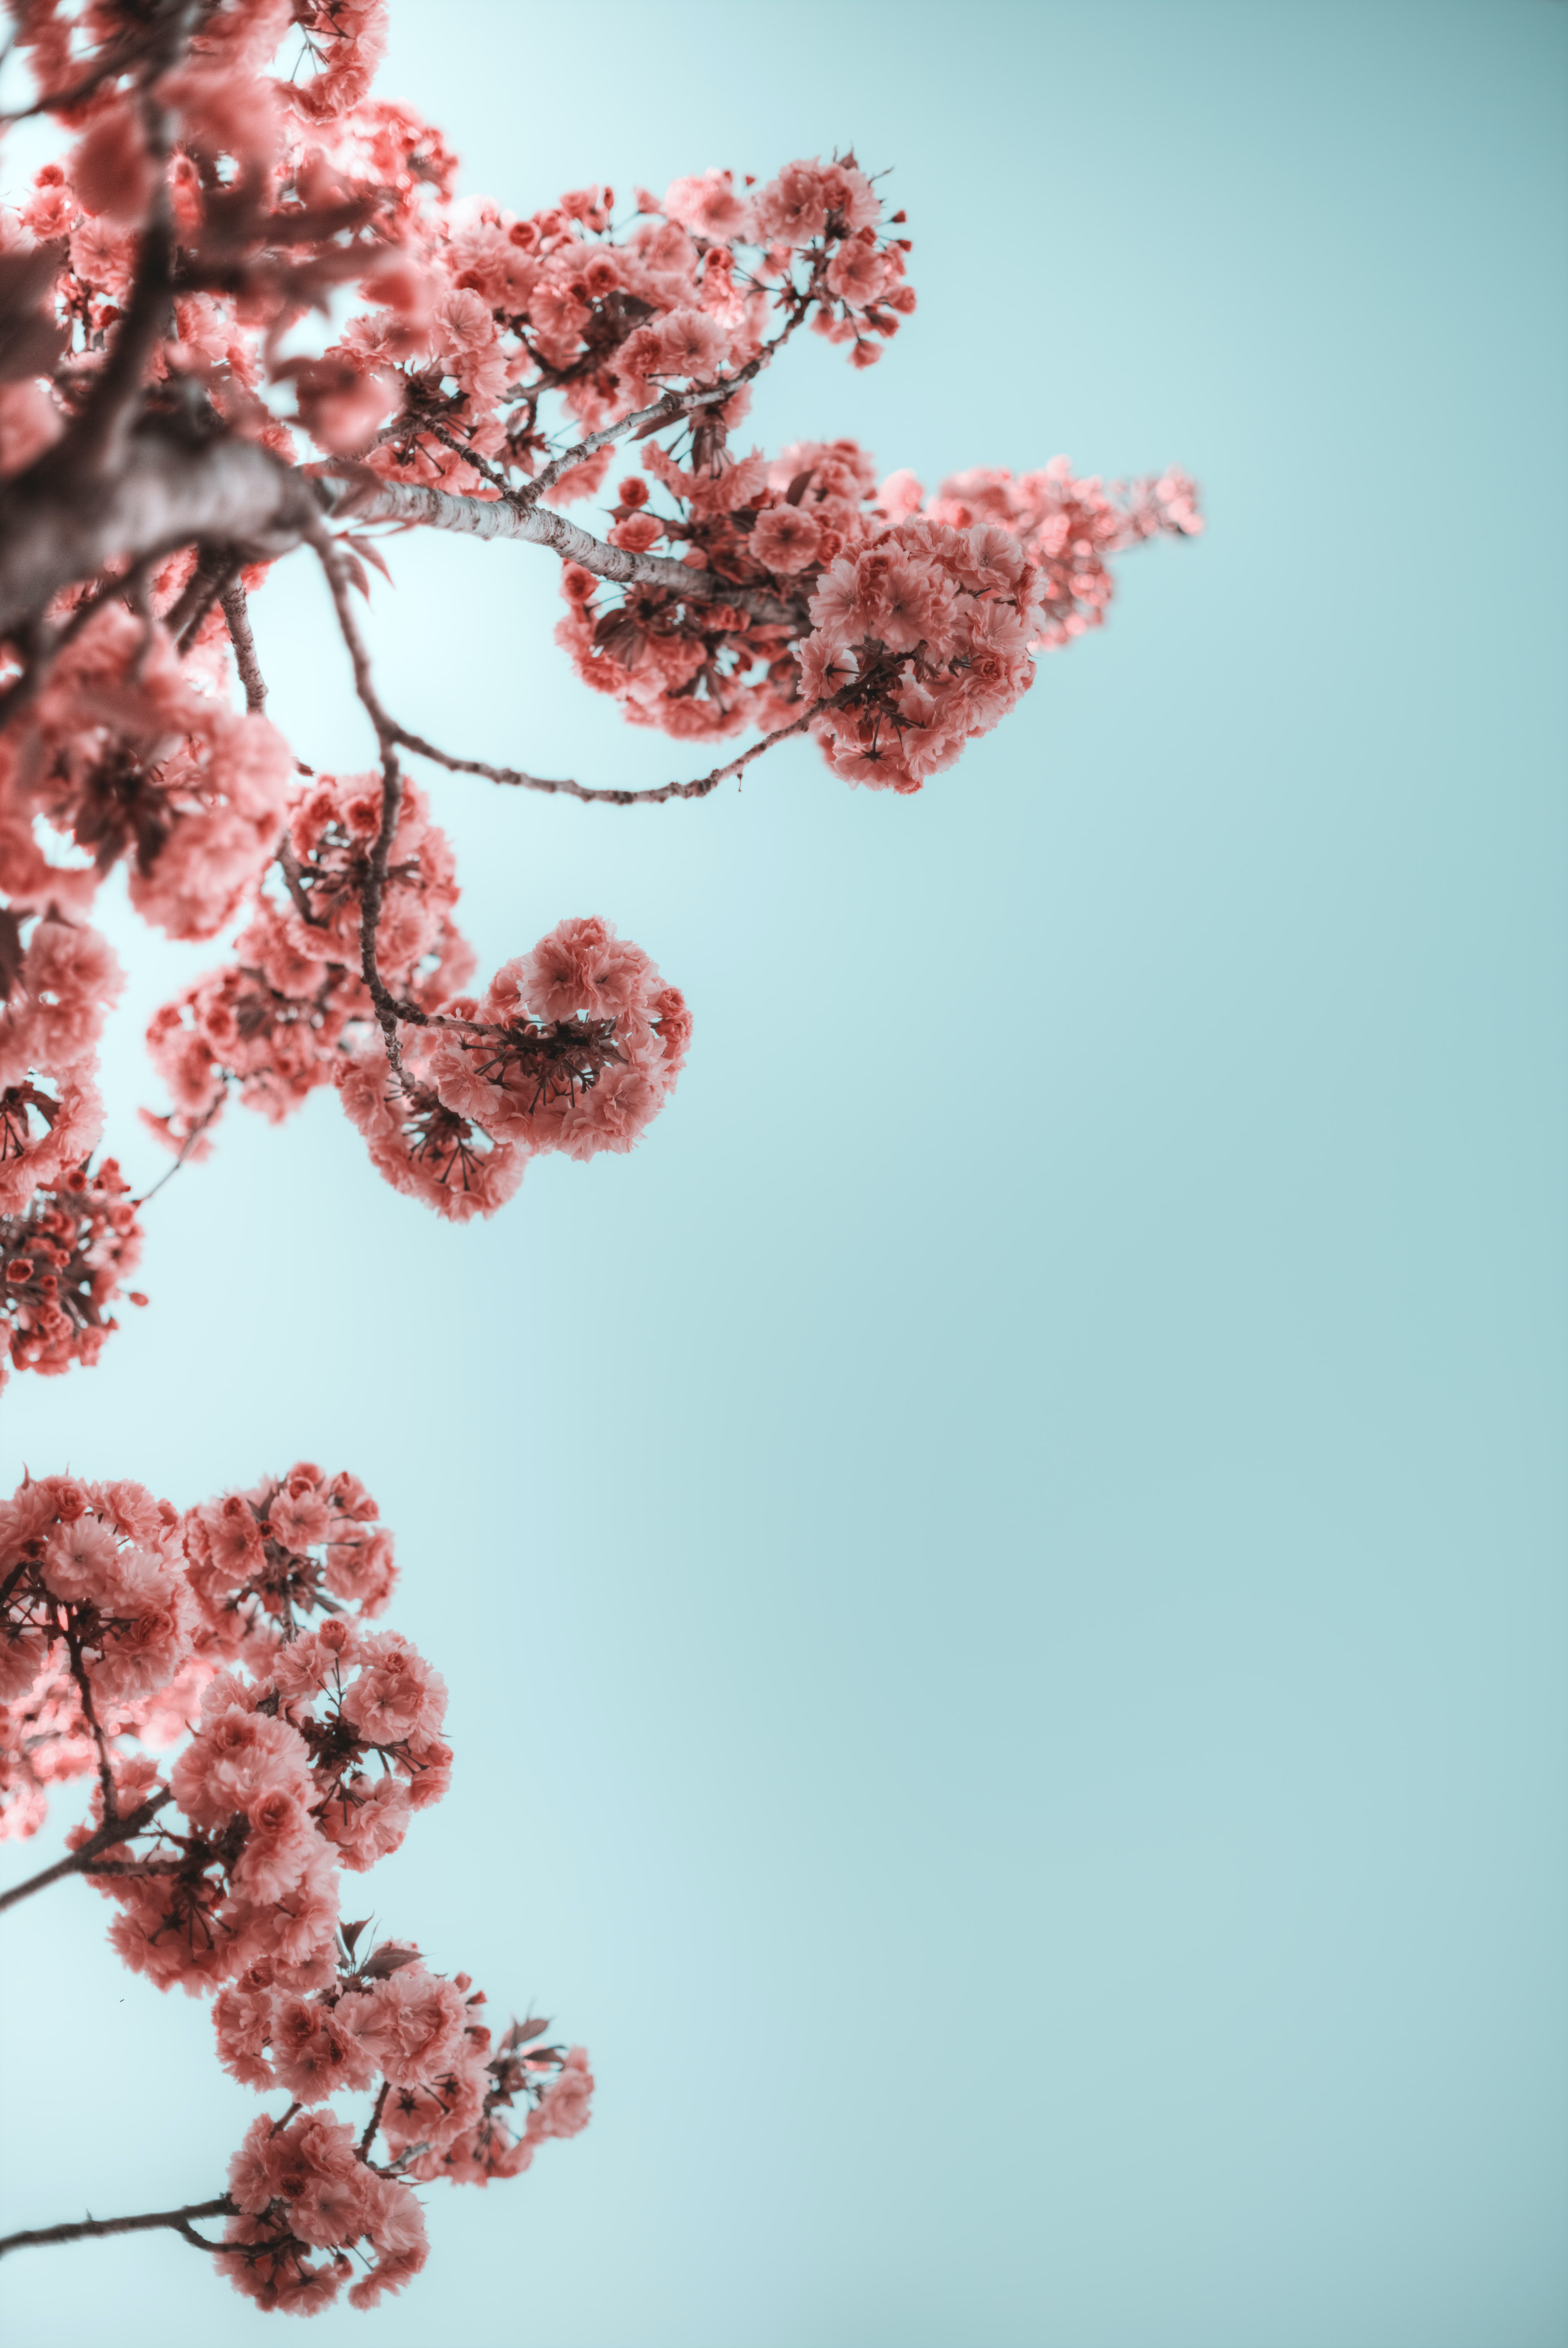 selective photograph of branches with flower